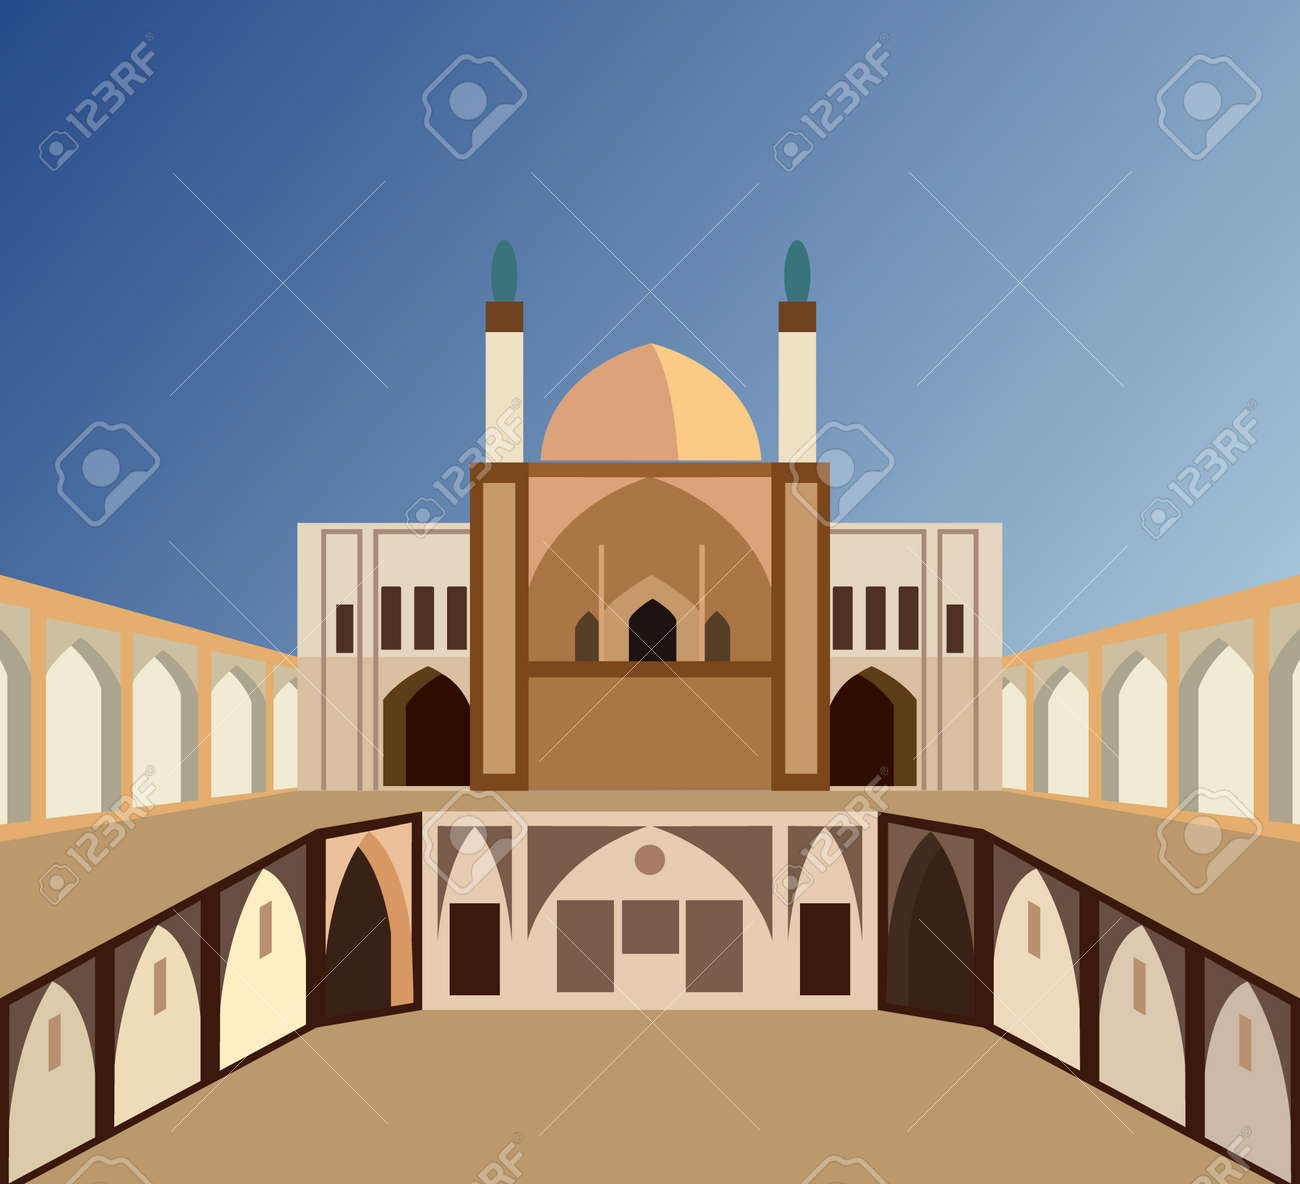 Aga Bozorg Mosque in Iran in the city of Kashan, vector illustration - 172185867